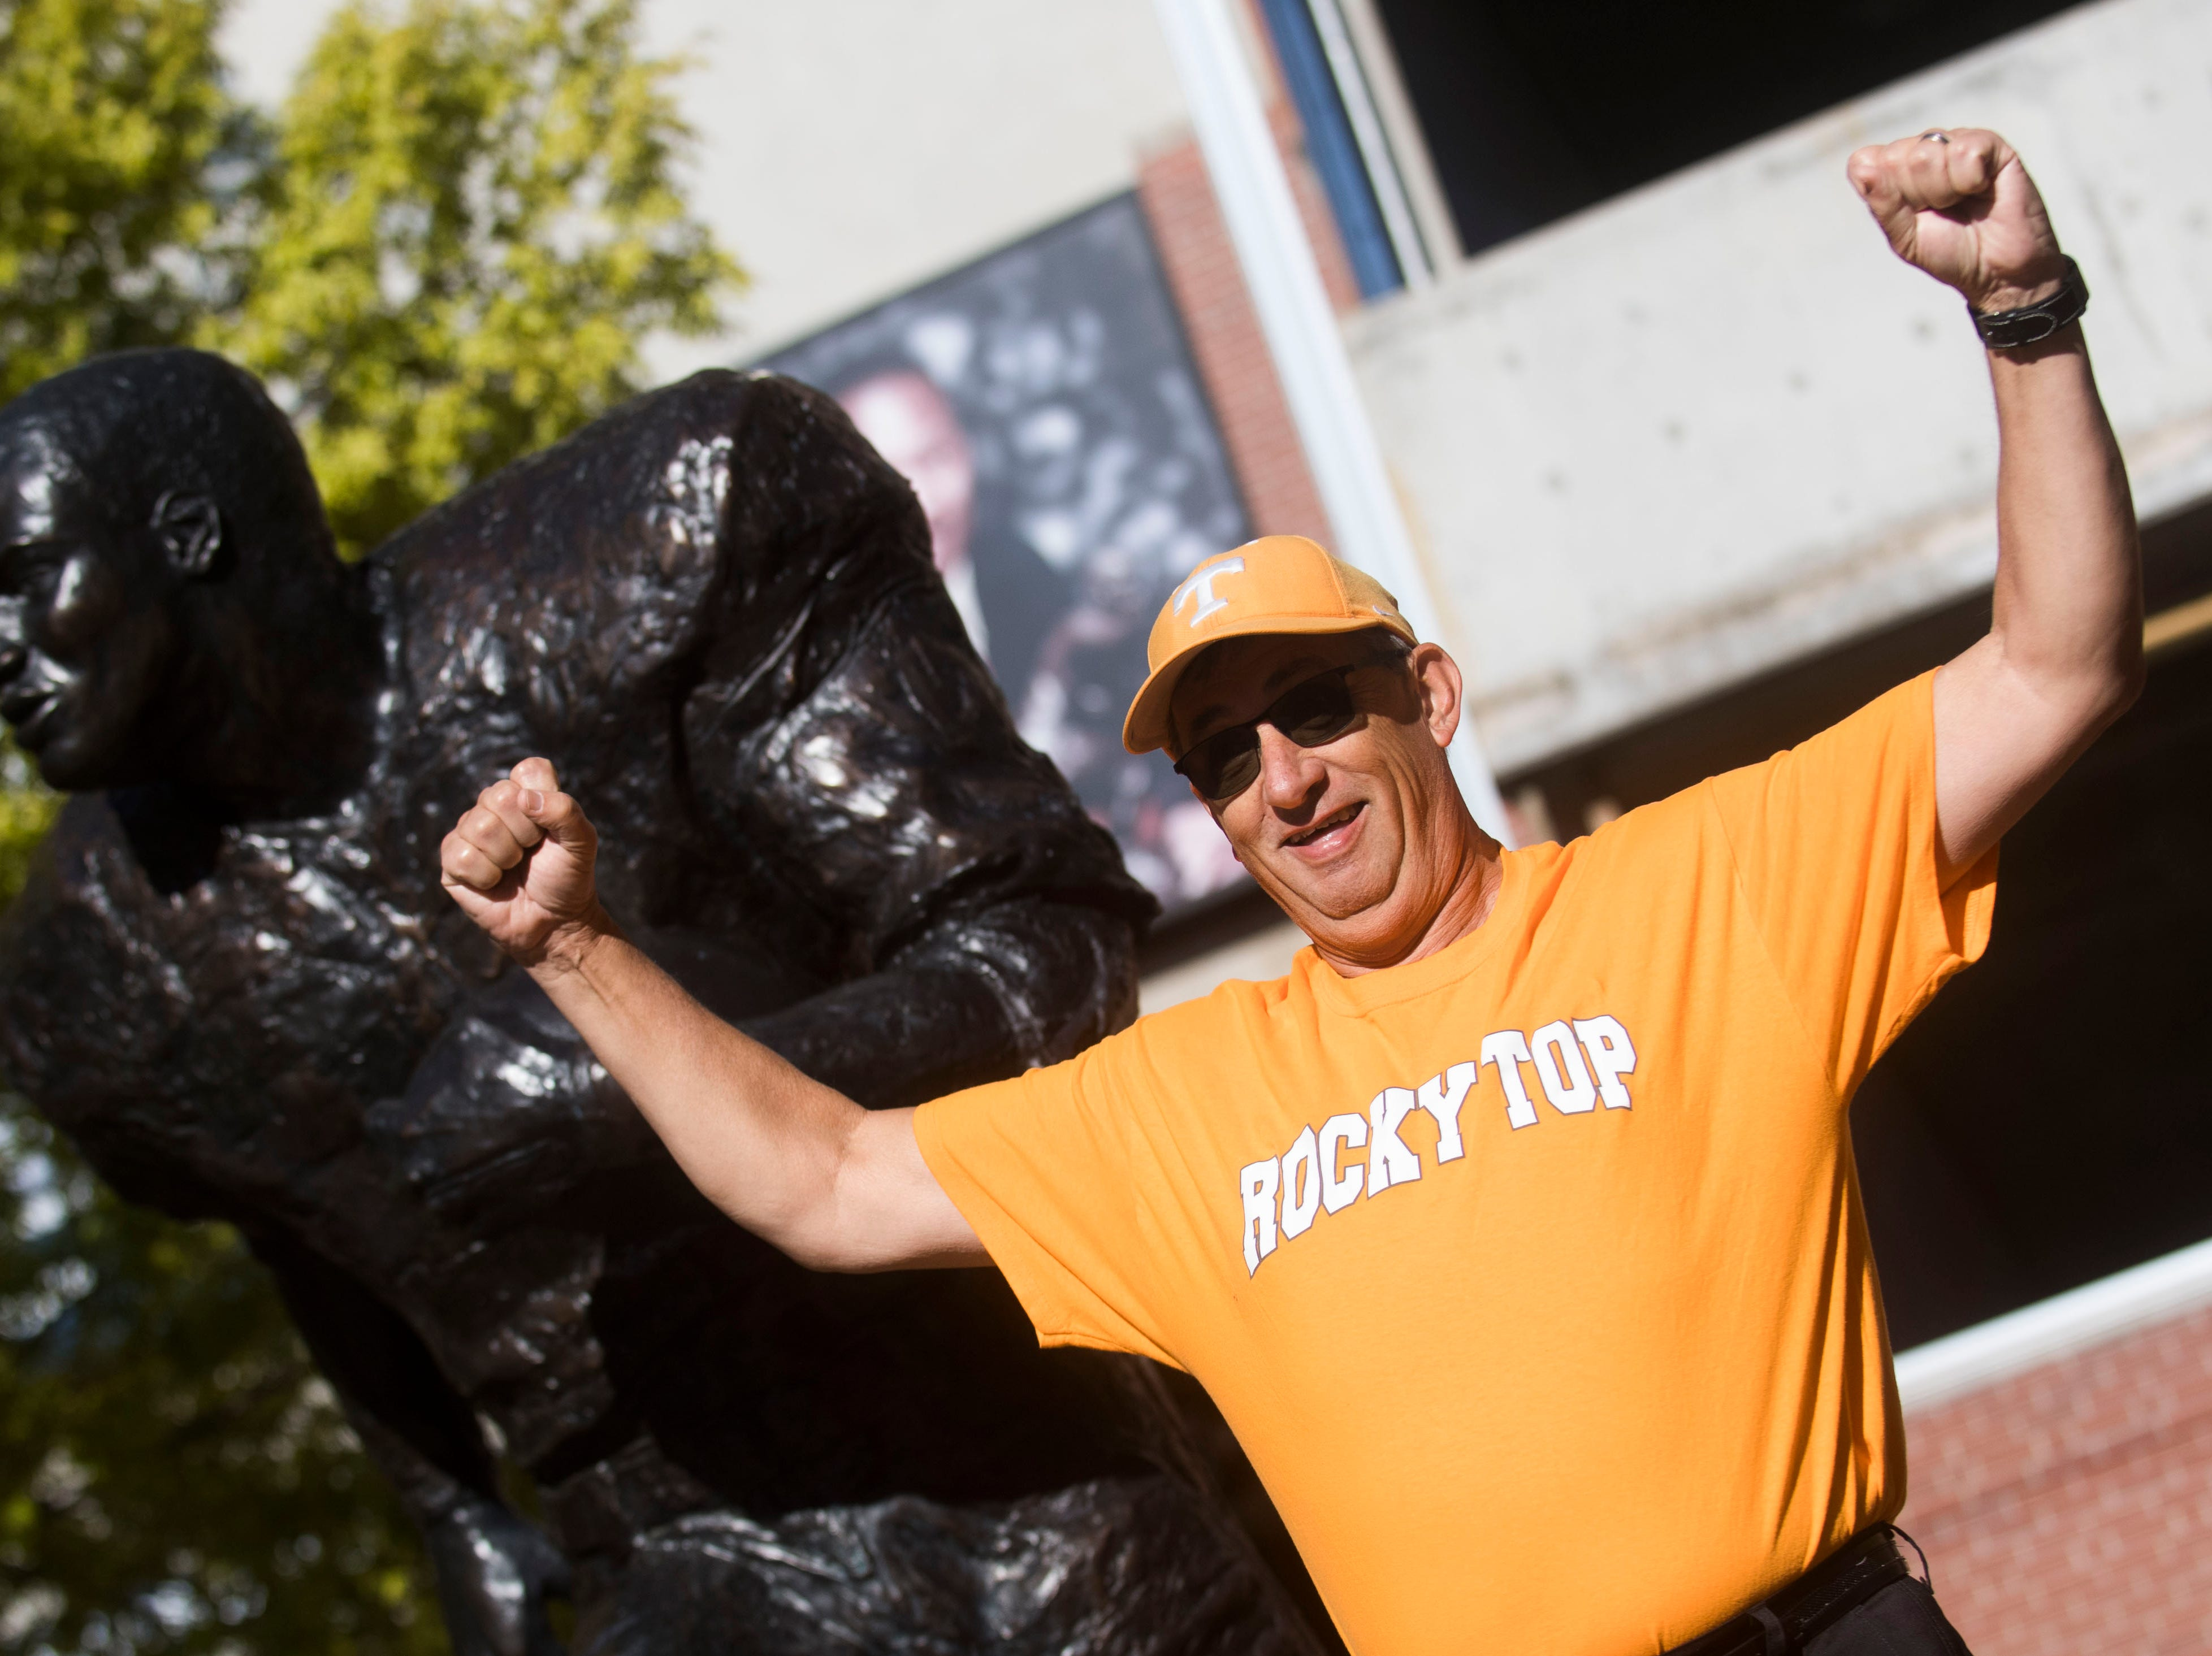 Kevin Moore of Cleveland, Tenn. poses for a photo with a statue before a game between Tennessee and Auburn at Jordan-Hare Stadium in Auburn, Ala. Saturday, Oct. 13, 2018.